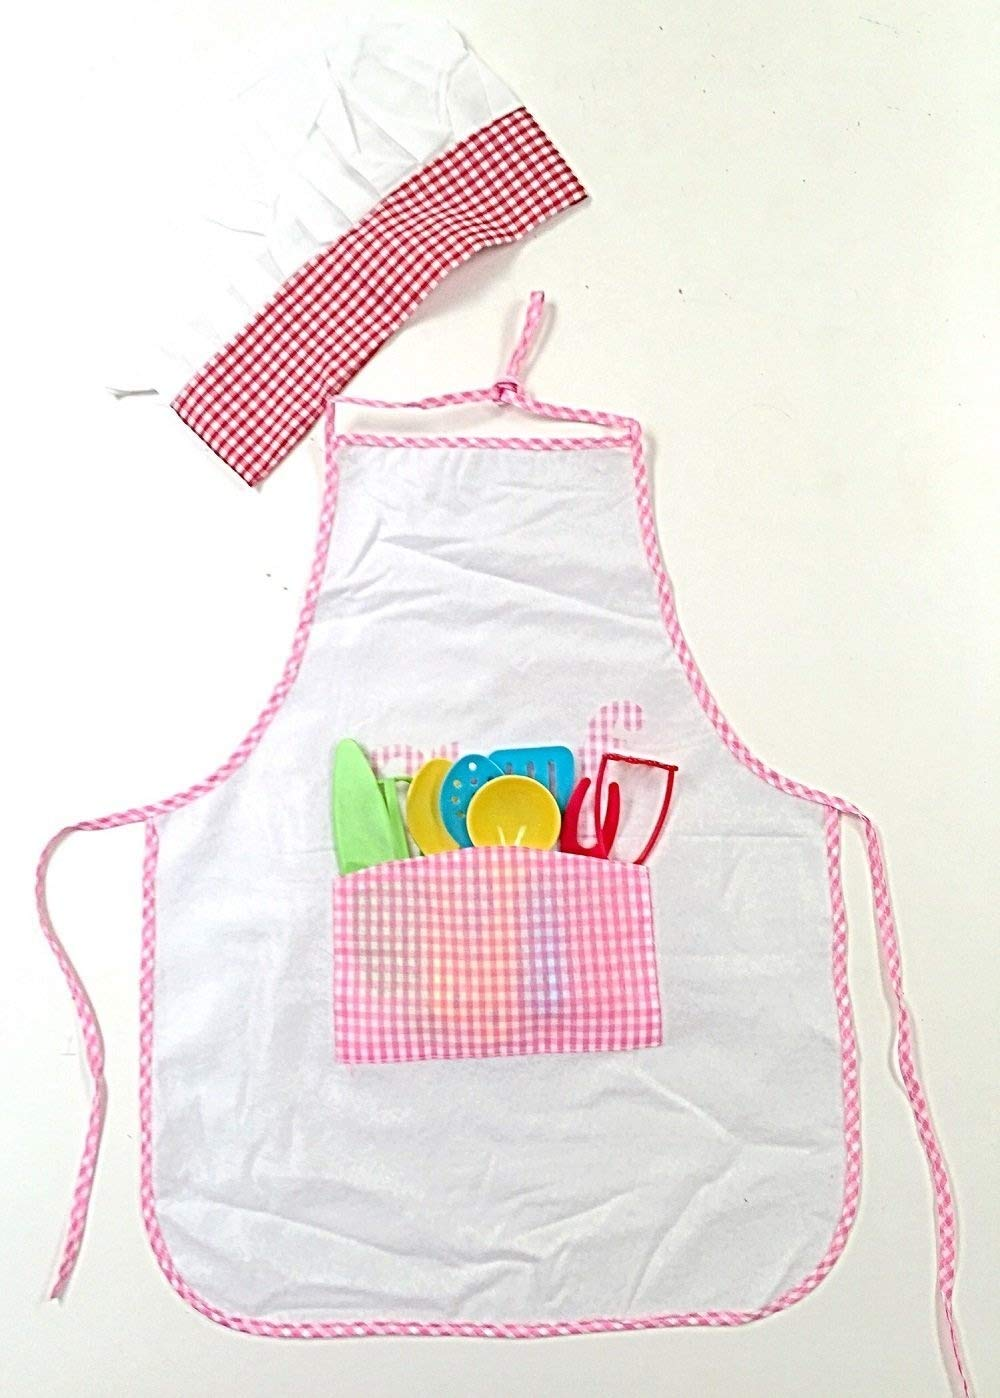 Littlest Chef Kids Apron with Chefs Hat and 8 Piece Cooking Utensil Set (Pink)